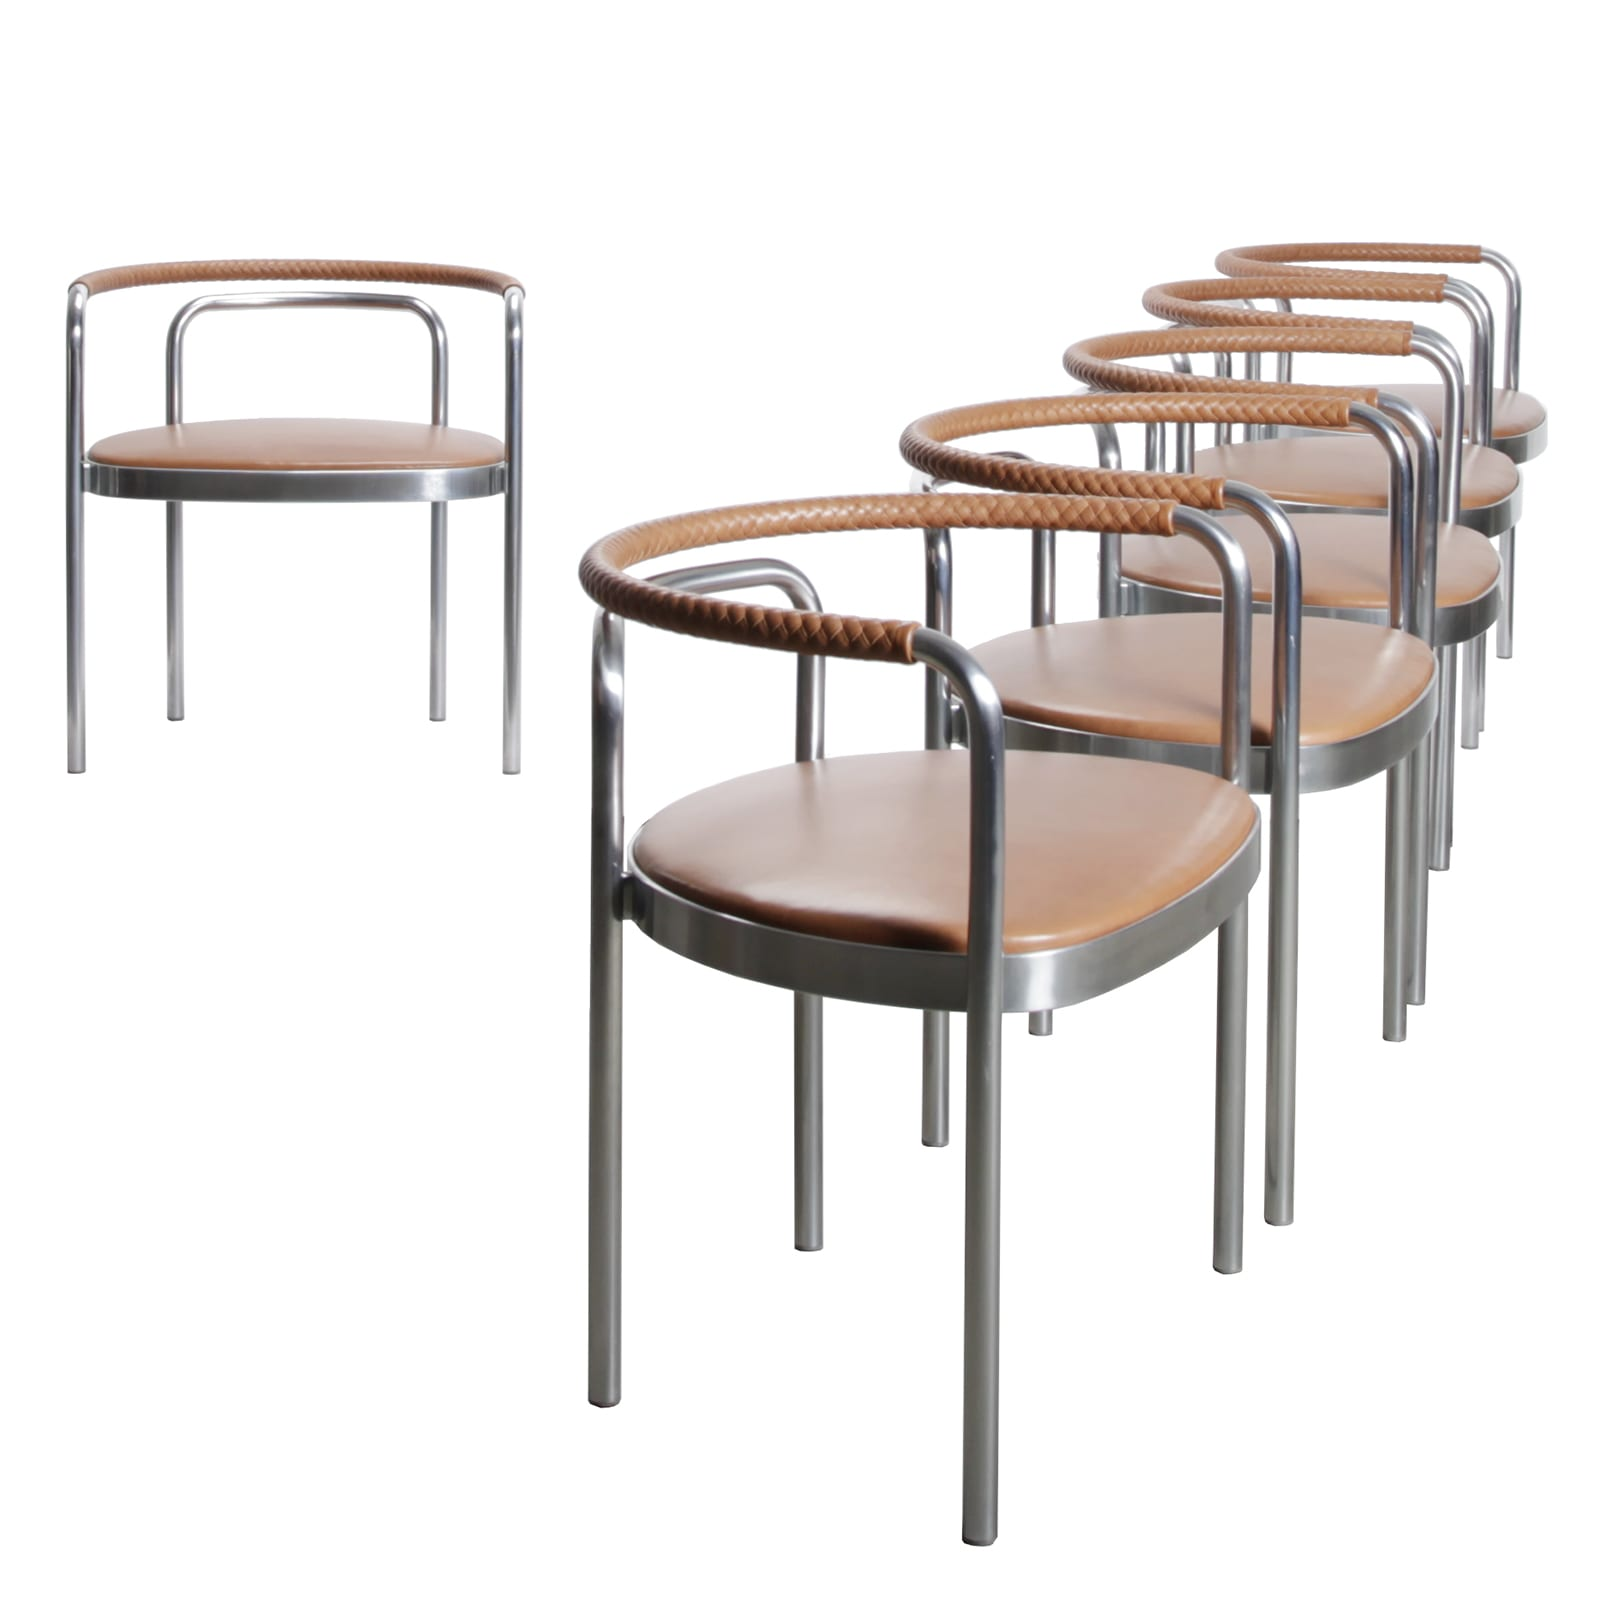 Set of 6 PK12 chairs